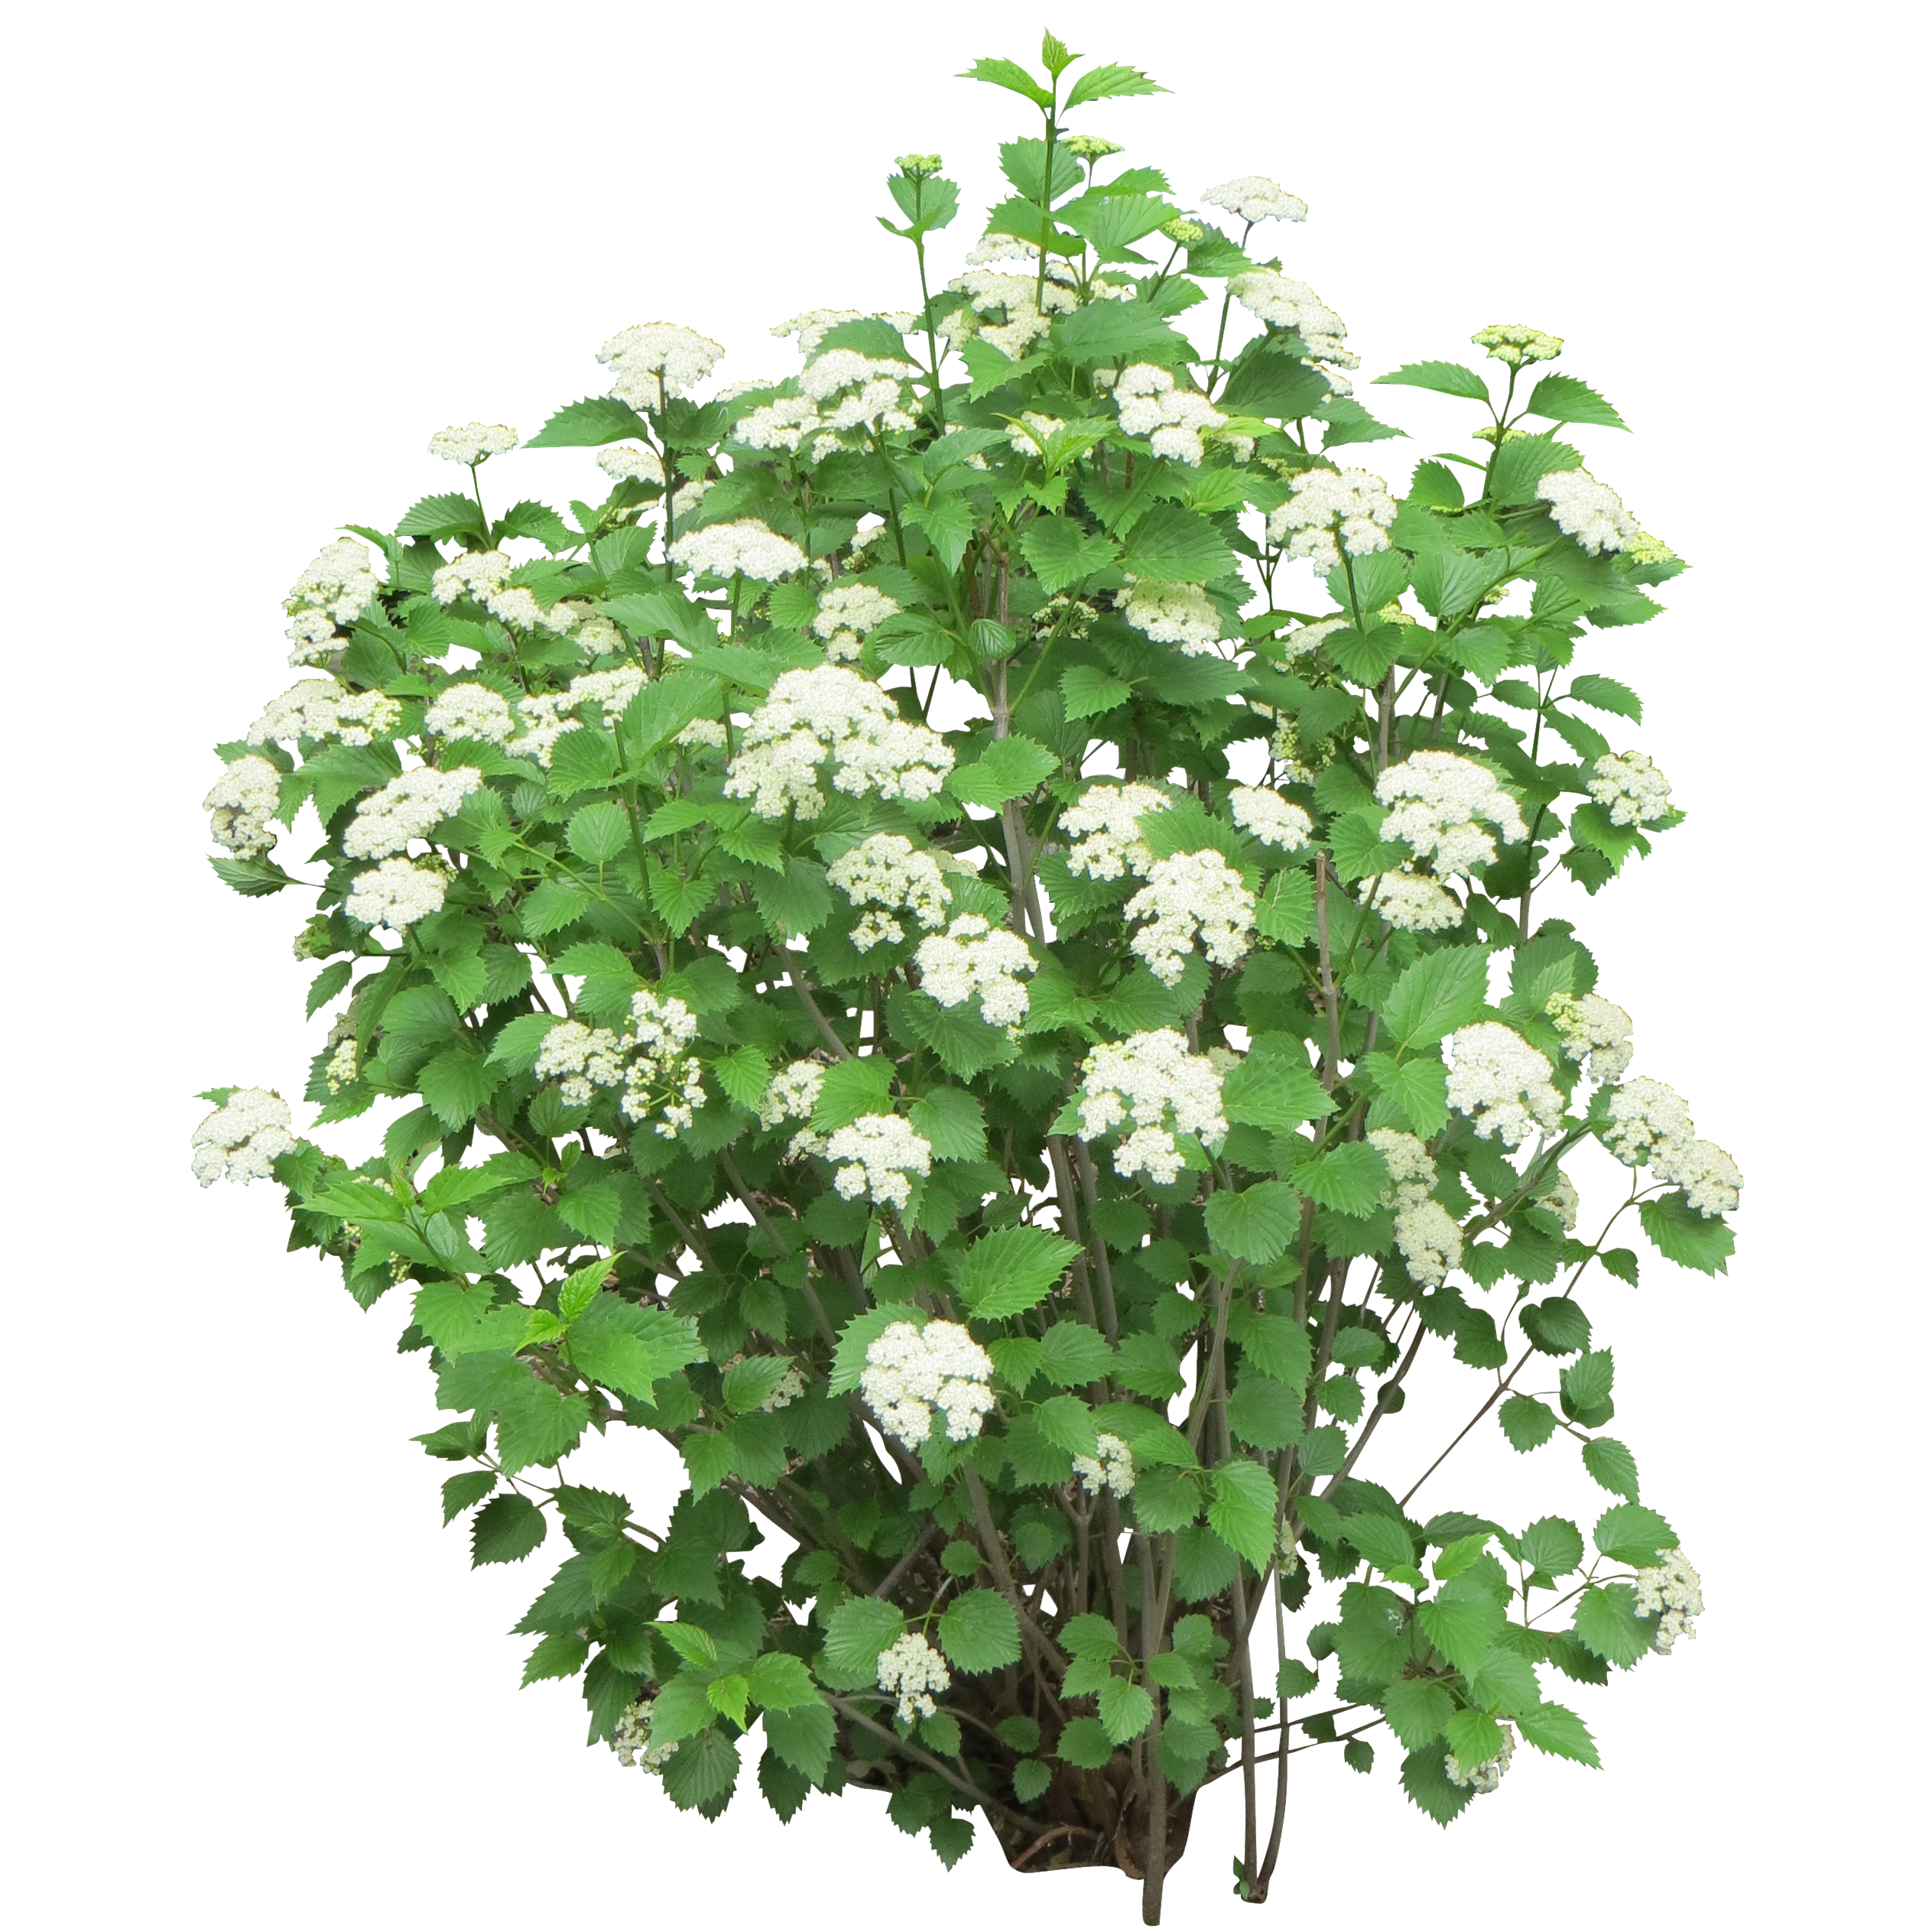 flowering shrub png